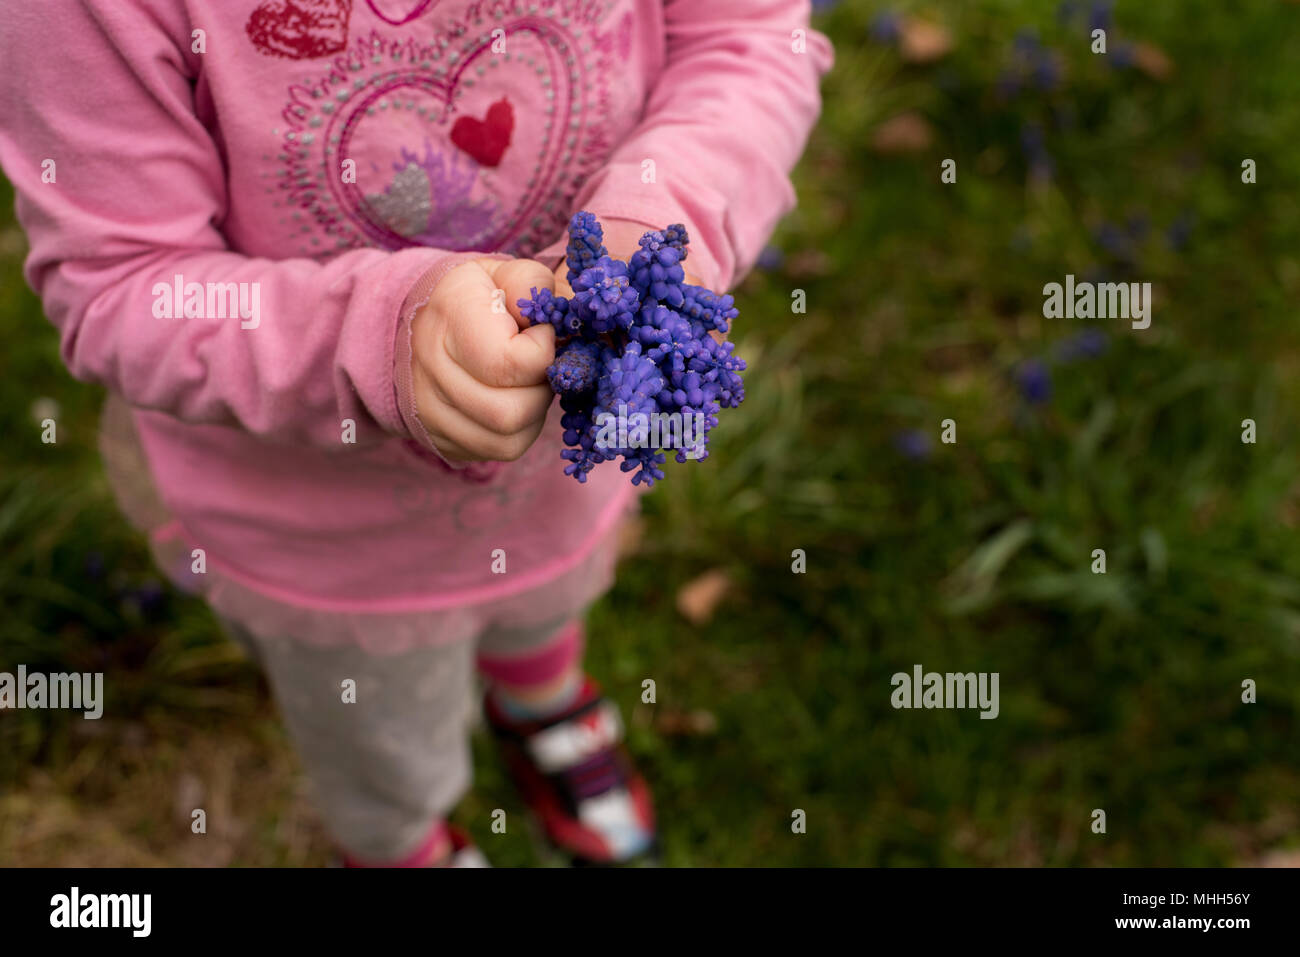 Girl With Purple Flowers Stock Photos & Girl With Purple Flowers ...